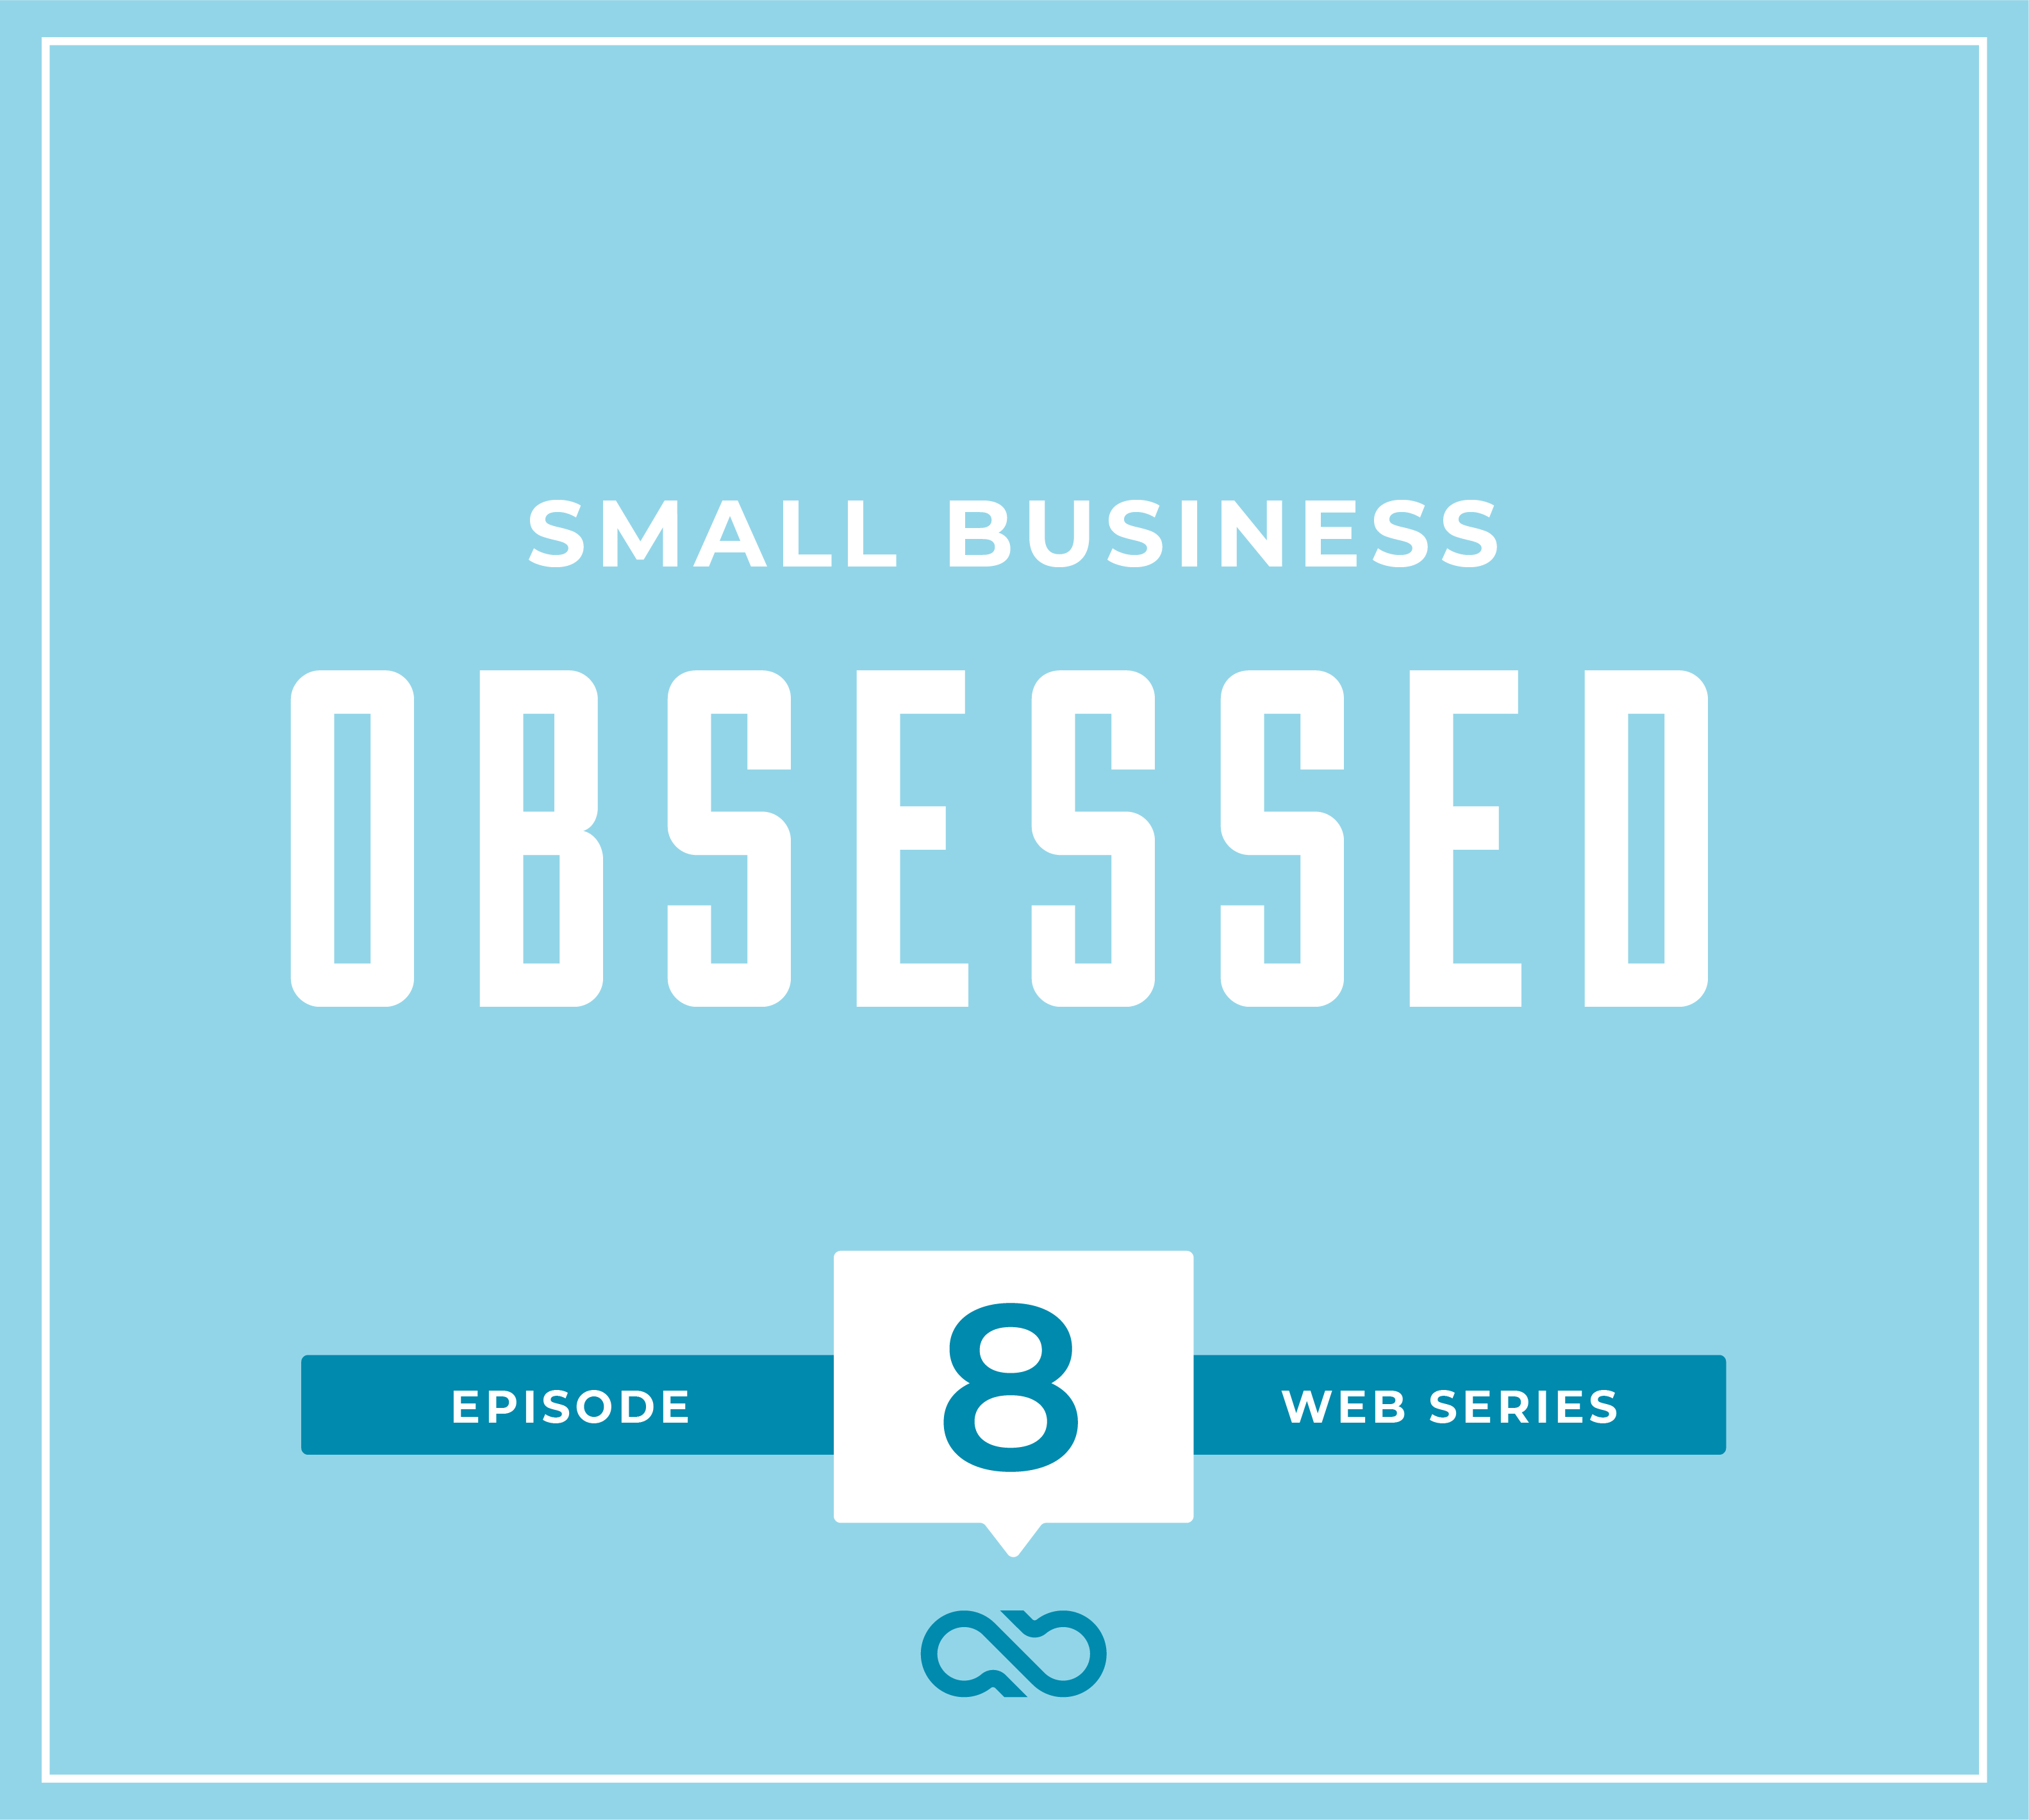 Small Business Obsessed Episode 8